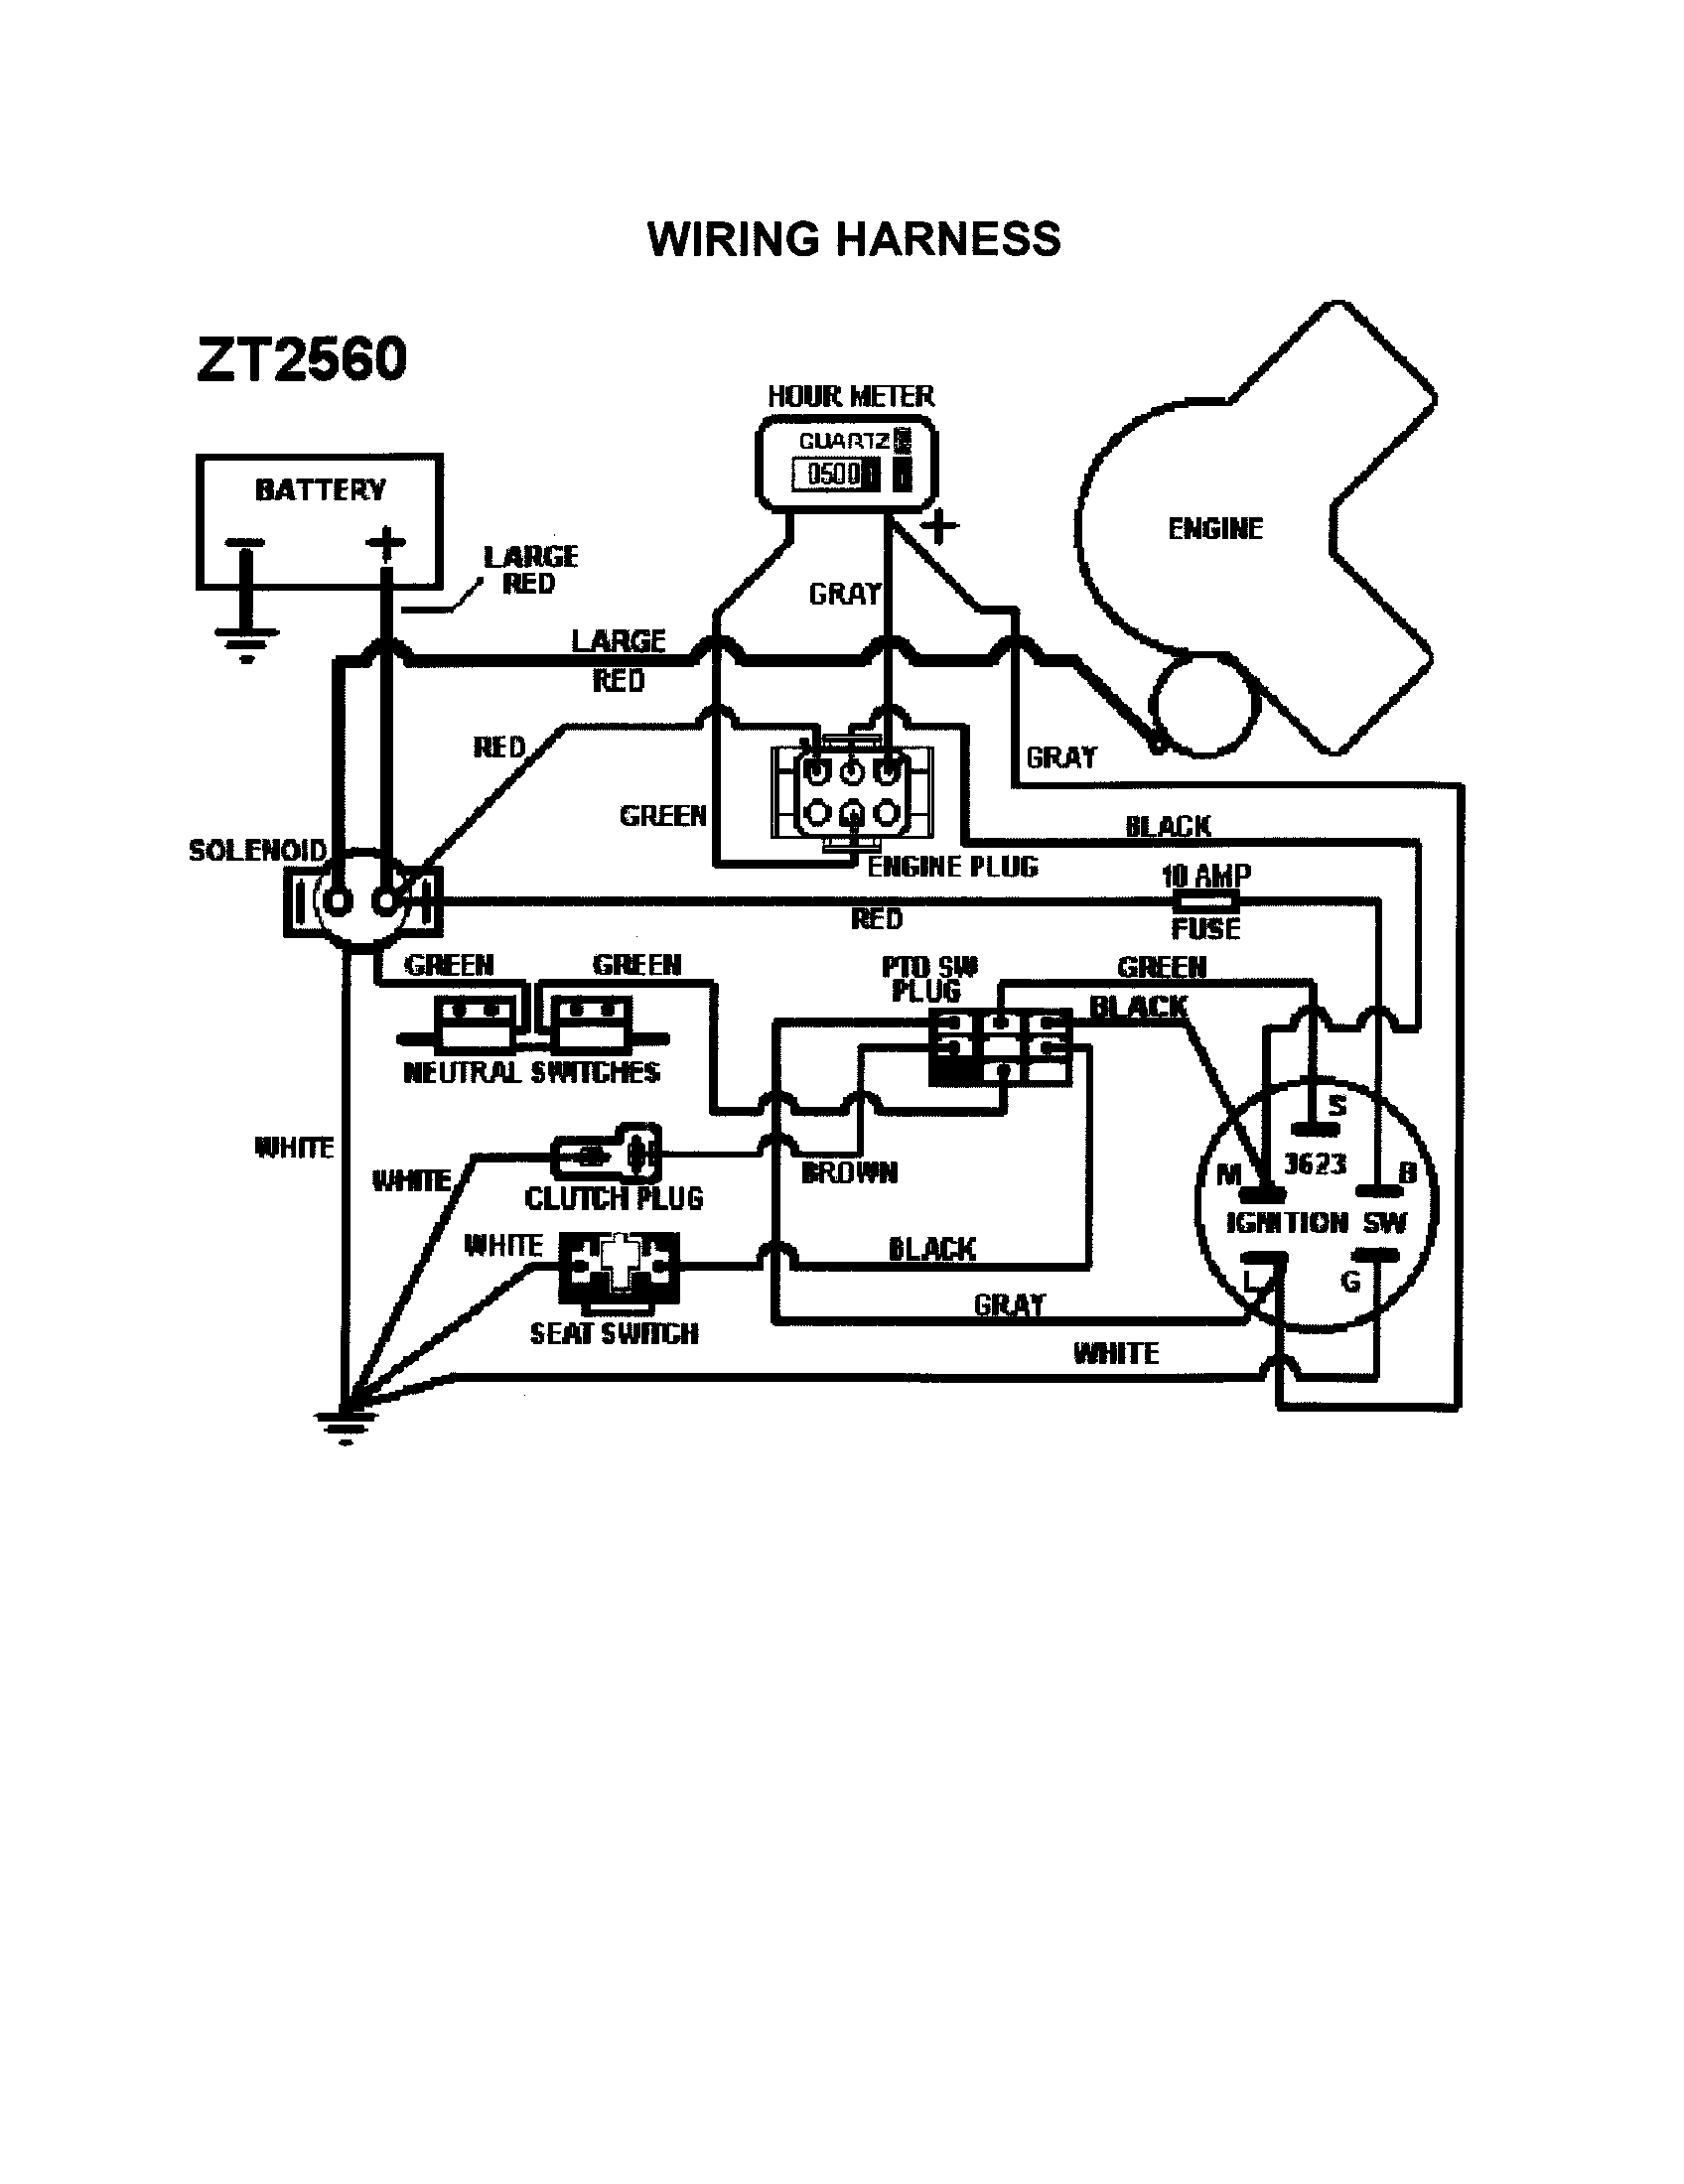 WIRING HARNESS Diagram & Parts List for Model ZT2560 Swisher-Parts  Riding-Mower-Tractor-Parts | SearsPartsDirec… | Riding mower, Craftsman  lawn mower parts, DiagramPinterest